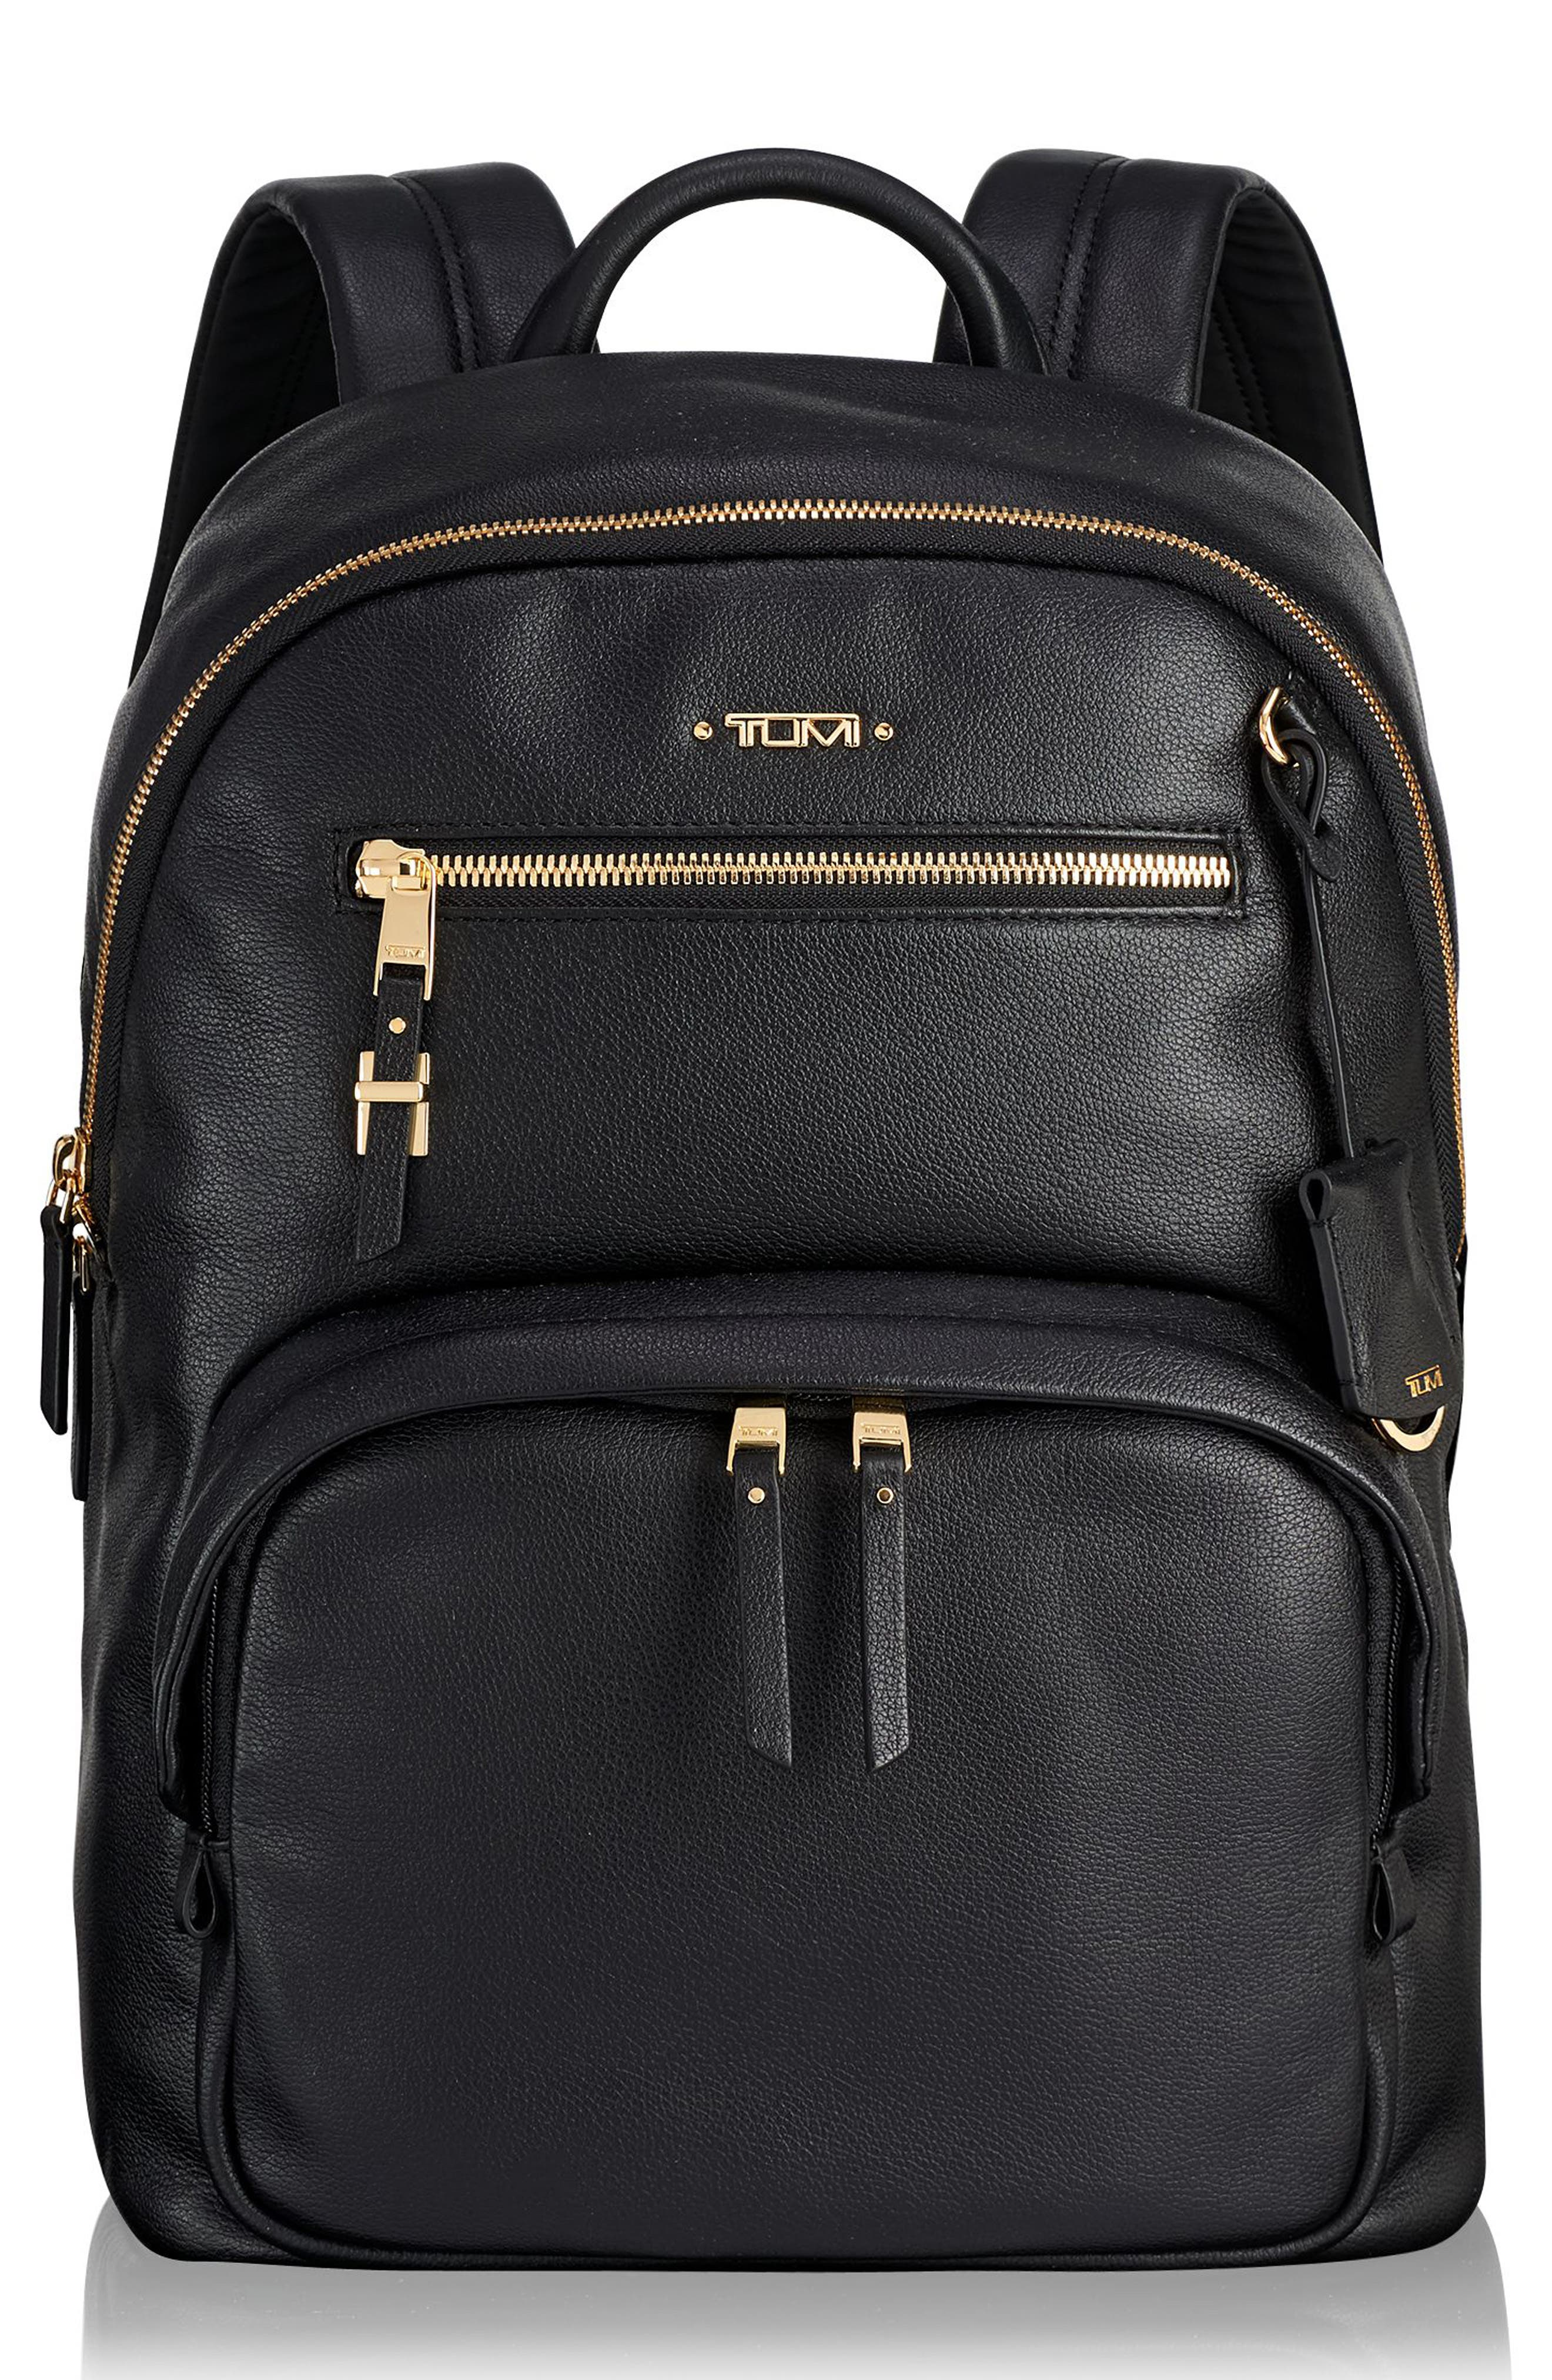 Voyageur Hagen Leather Backpack,                         Main,                         color, 001